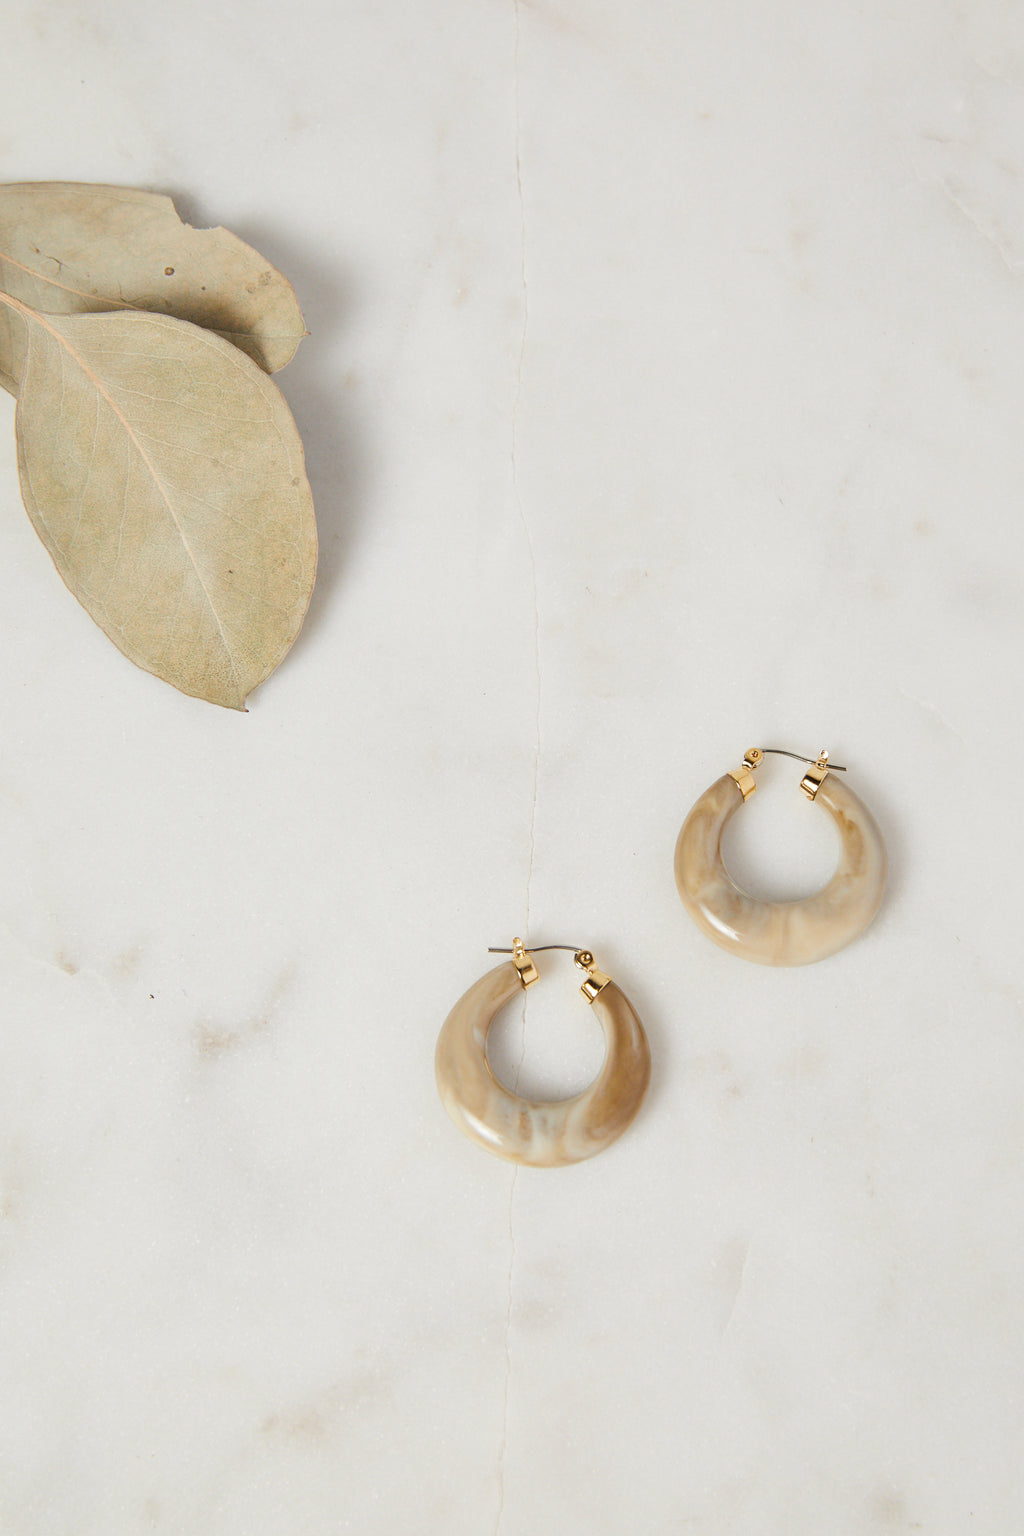 Beige Acetate Hoop Earrings - picnic-sf